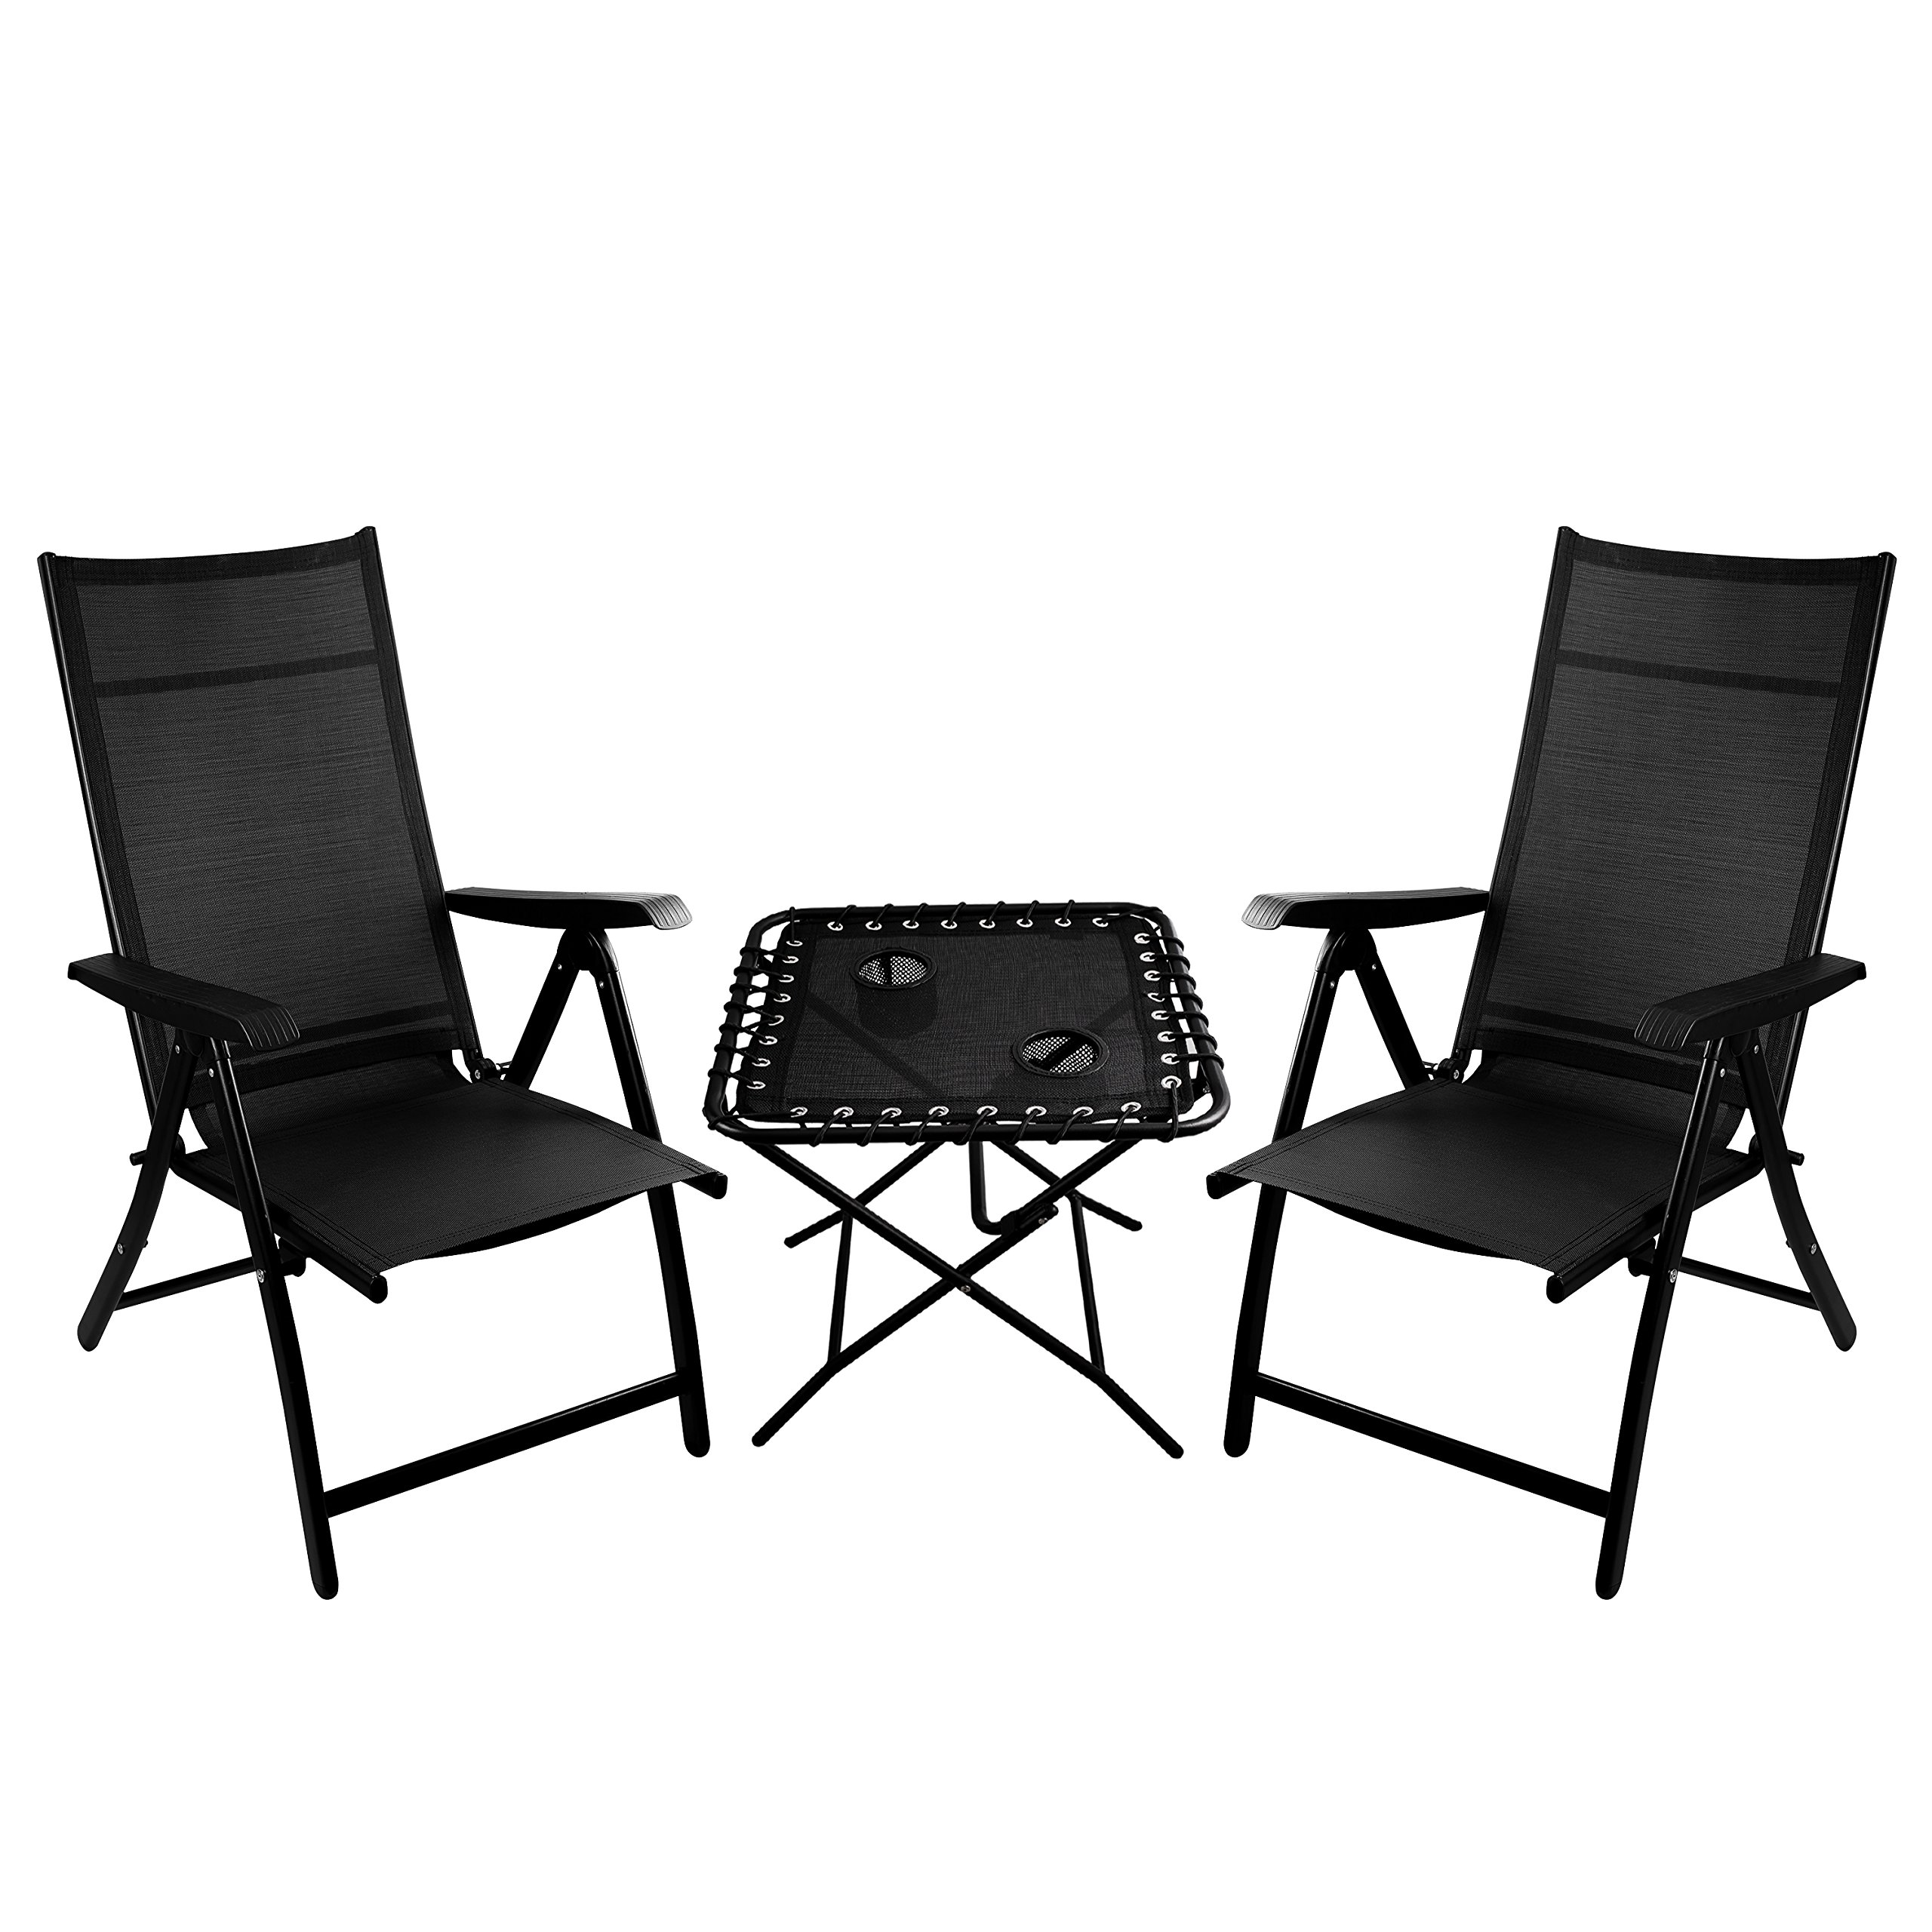 2 Heavy Duty Durable Adjustable Reclining Folding Chairs + 1 Folding Side Table Outdoor Indoor Garden Pool